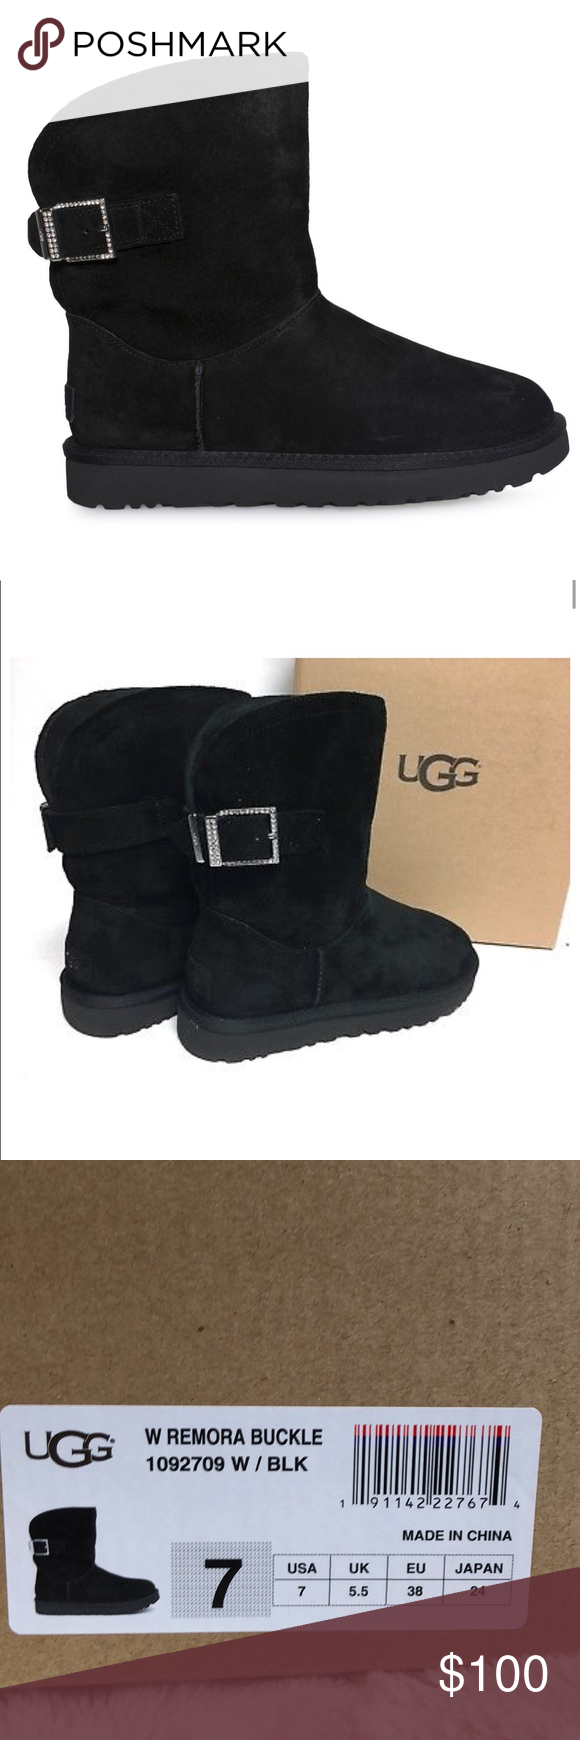 Remora Buckle Black Ugg Boots Size 7